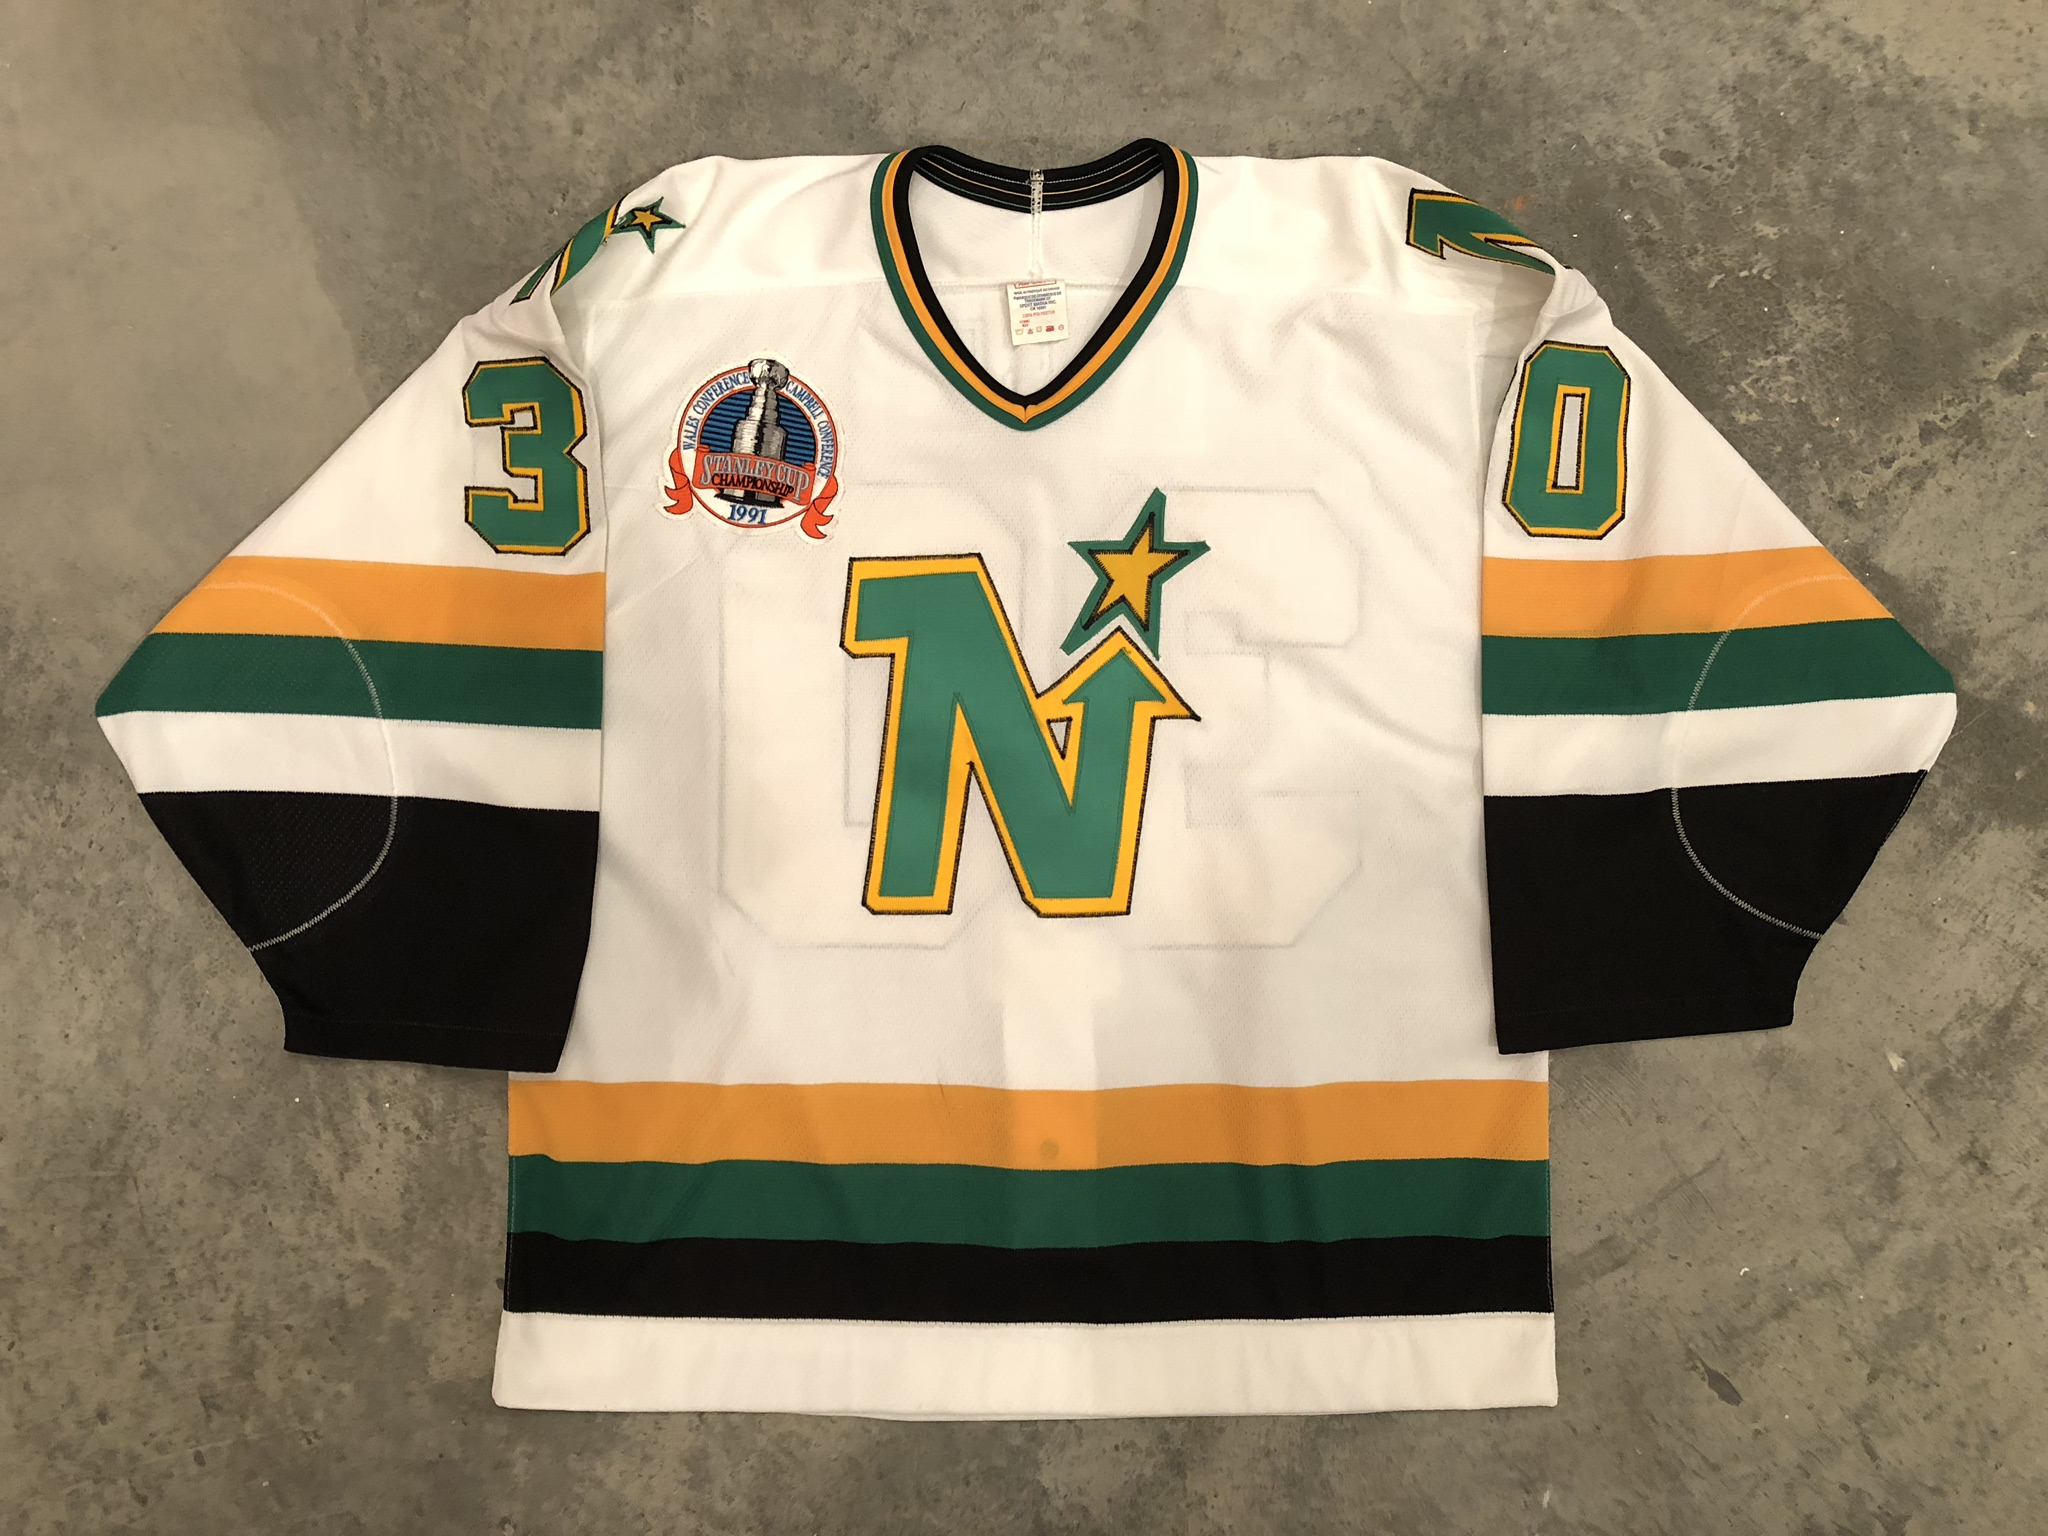 1991 Jon Casey game worn home jersey with 1991 Stanley Cup finals patch